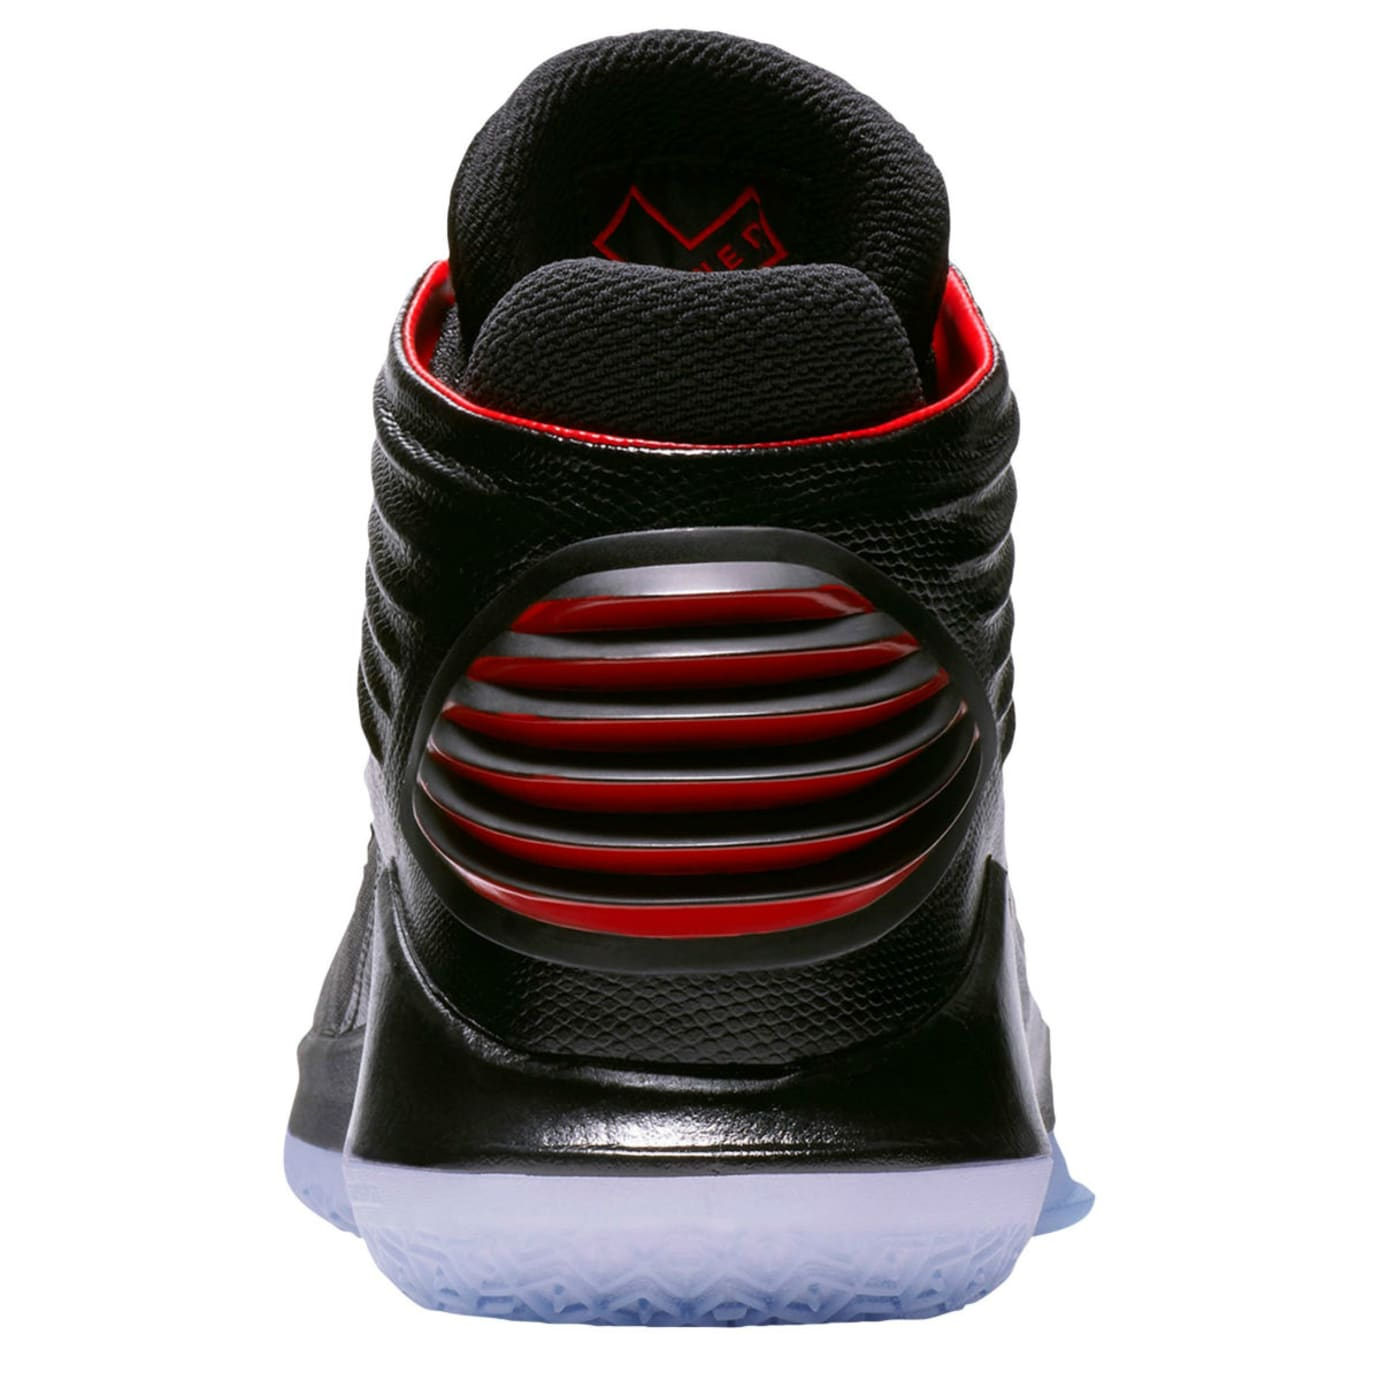 8e78a30fd1cc New Images   Release Date For Air Jordan 32  MJ Day  AA1253-001 ...